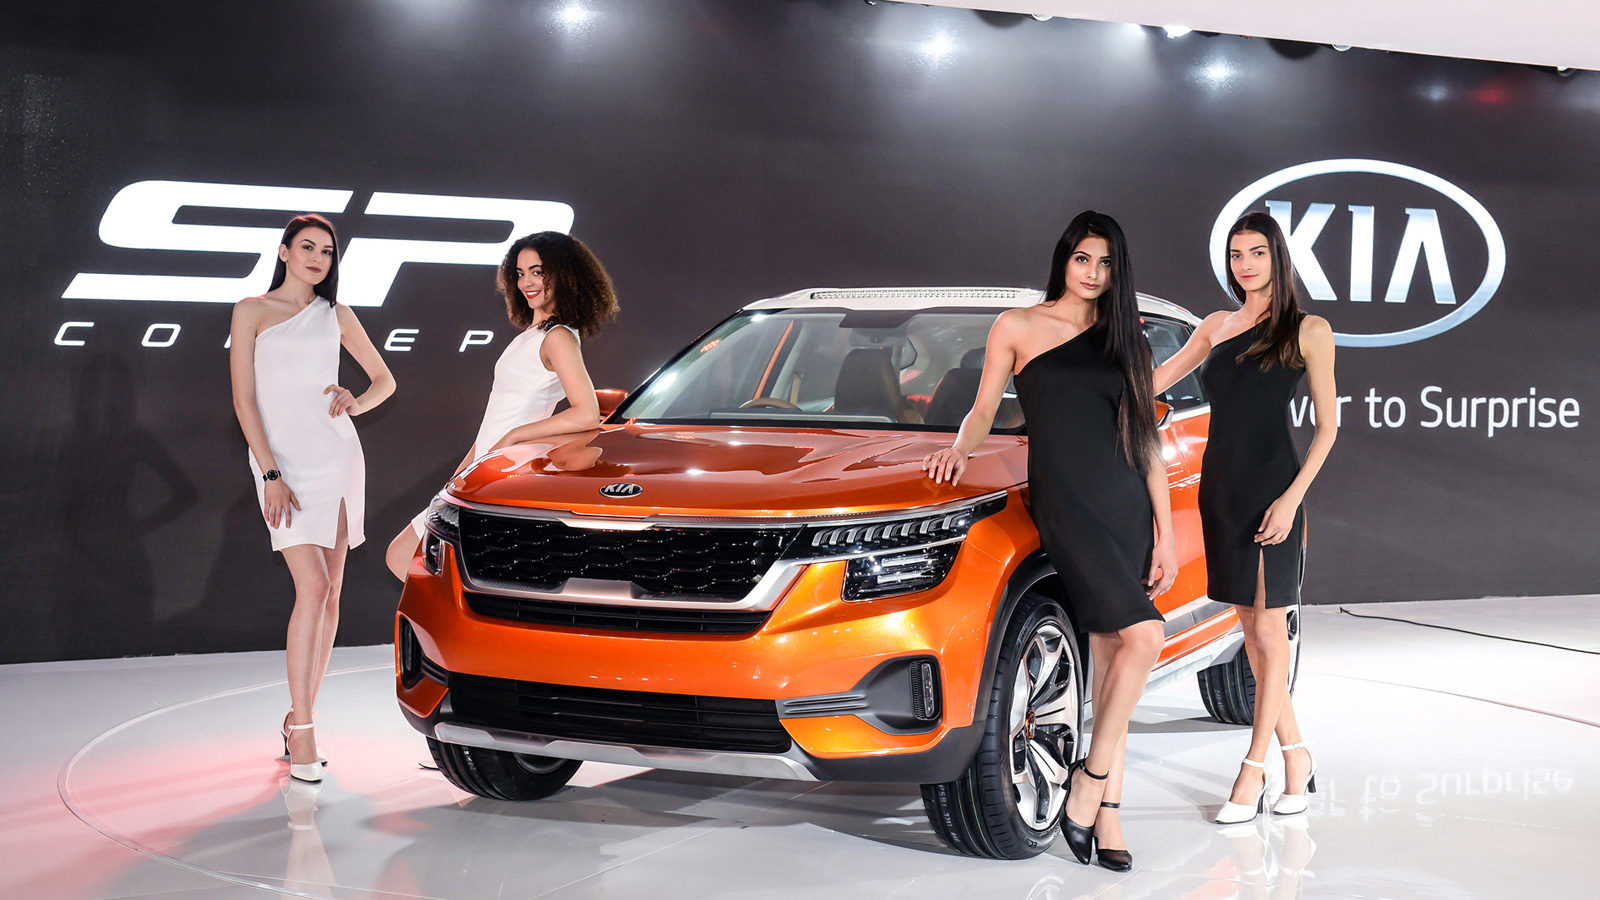 The first KIA SP2i to be launched in India in 2019